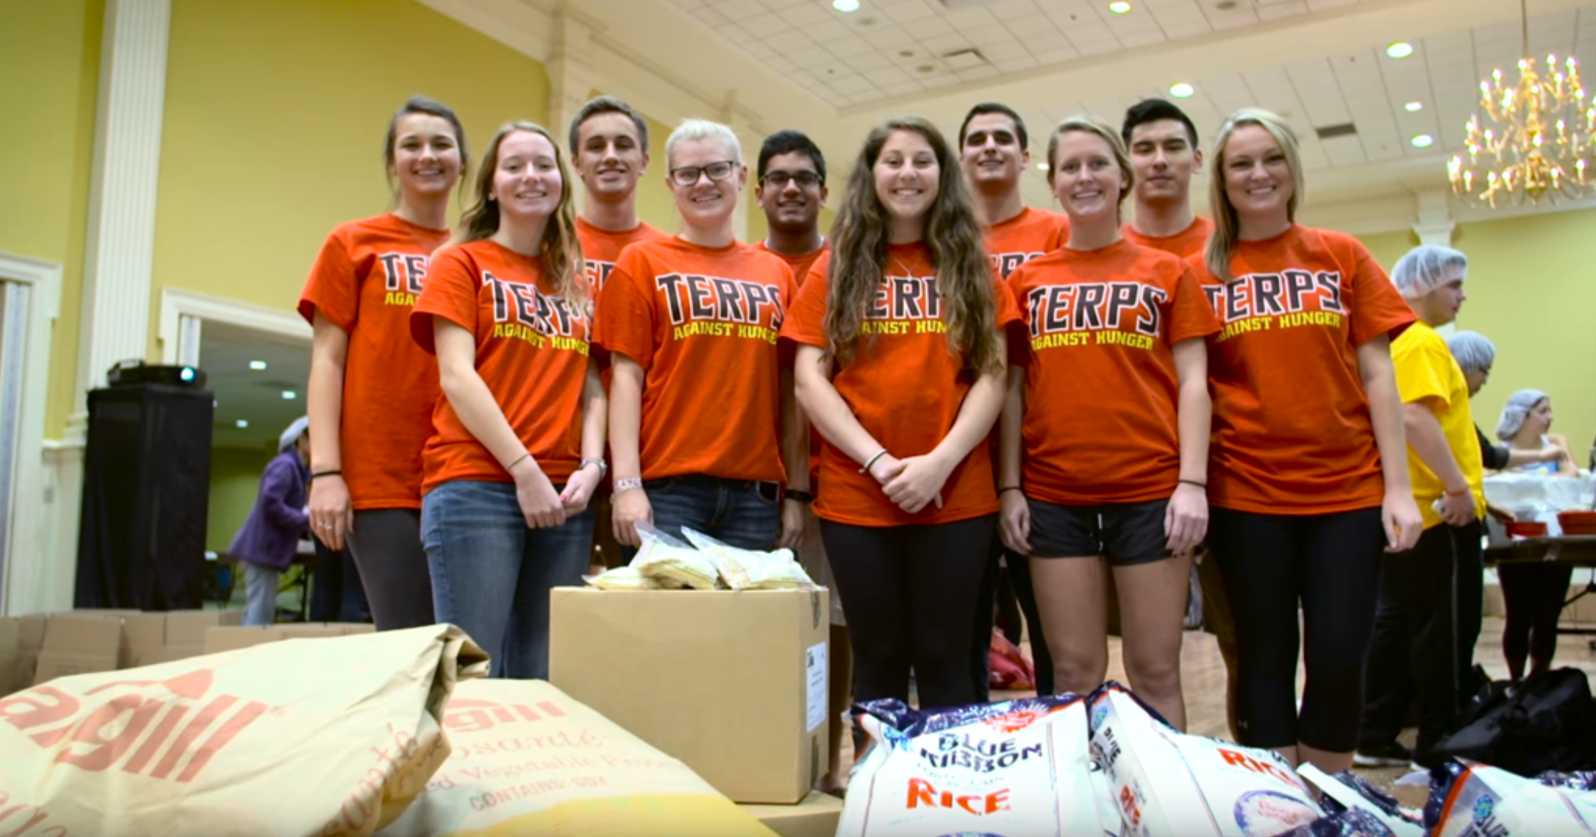 Terps Against Hunger in Maryland Pride Video